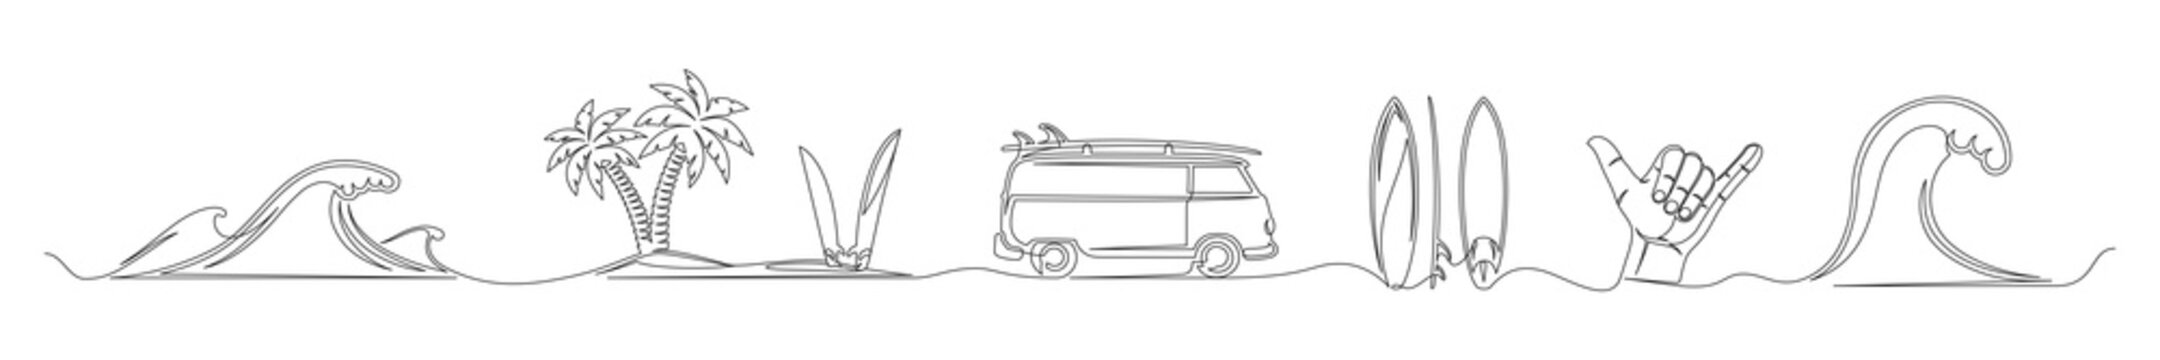 Set of continuous one line drawing of a surfing theme. One line of waves, palm trees, surfboards, camper, beach isolated on white background. Surfing concept. Vector illustration